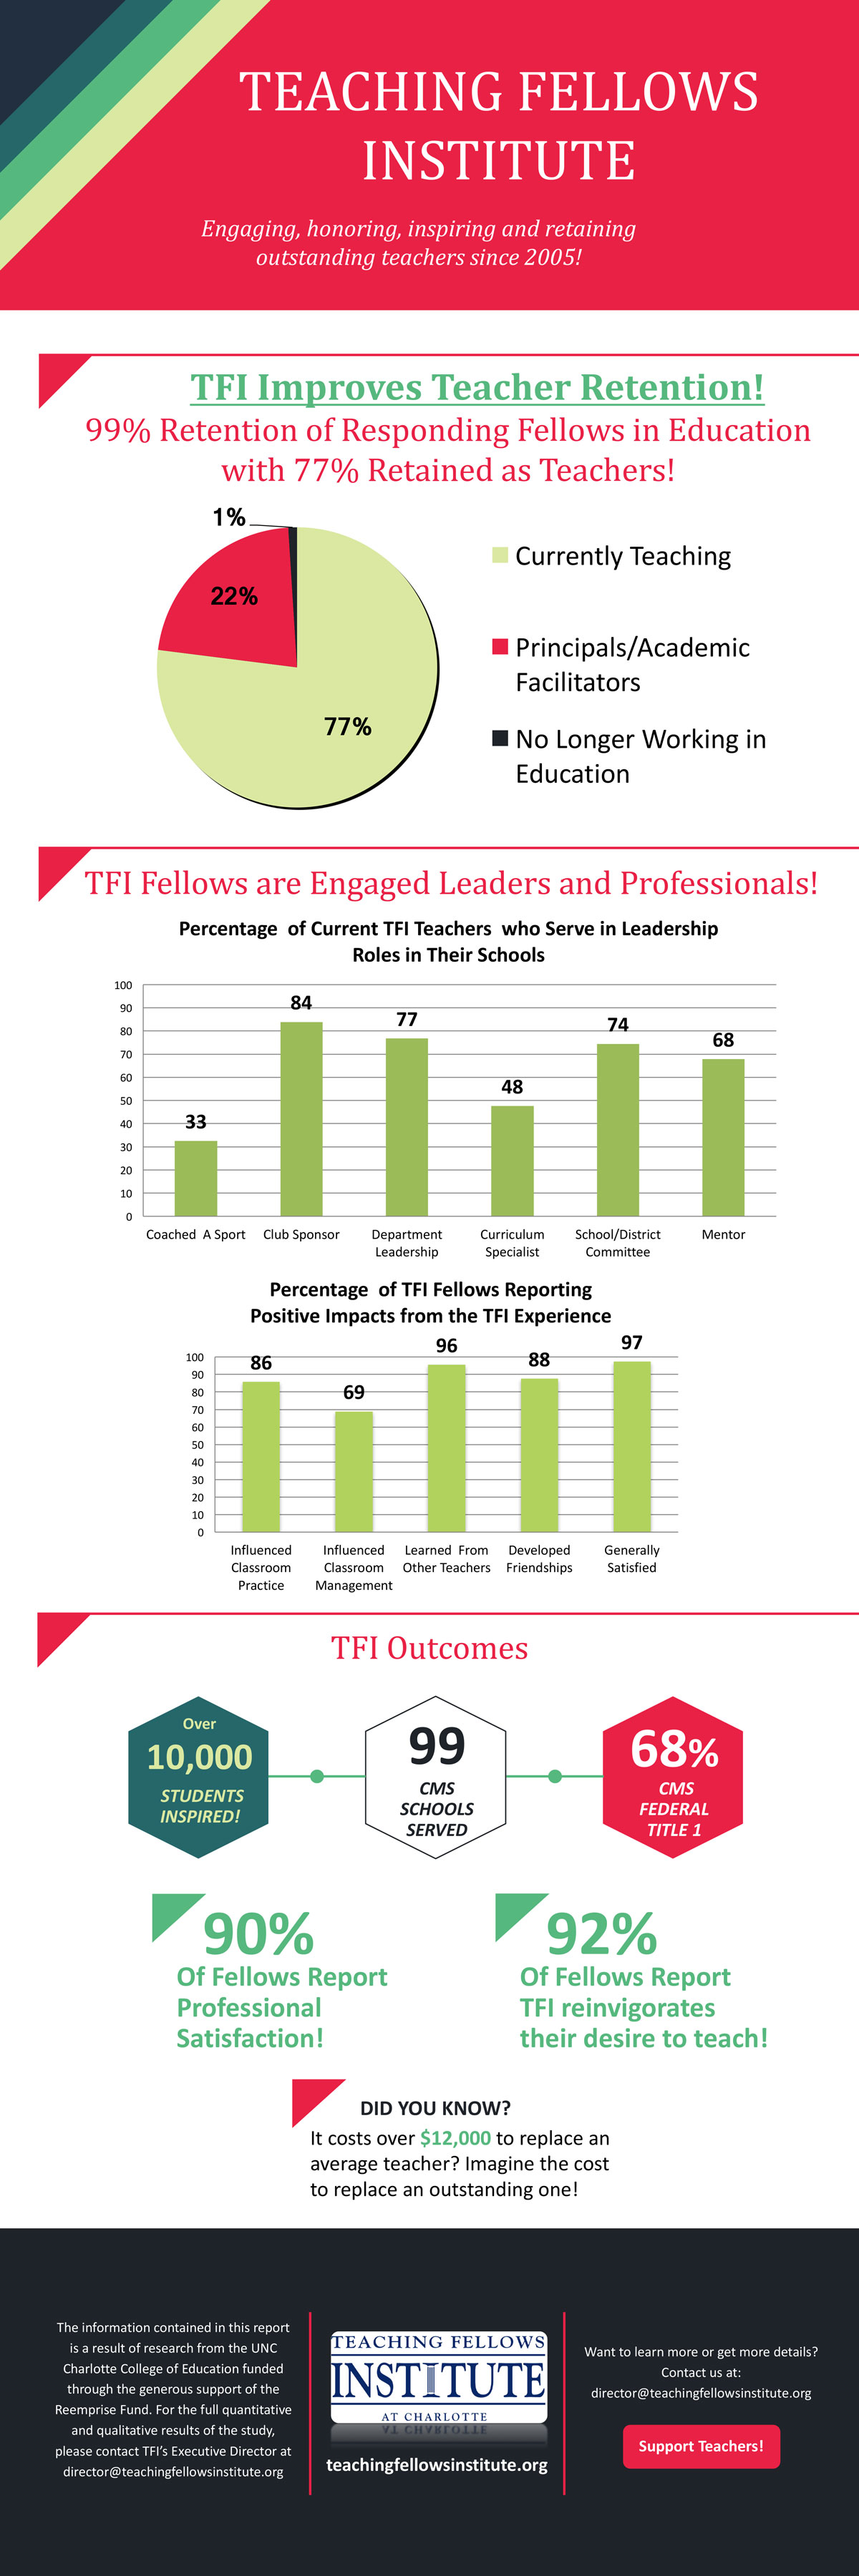 Infographic: Teaching Fellows Institute outcomes